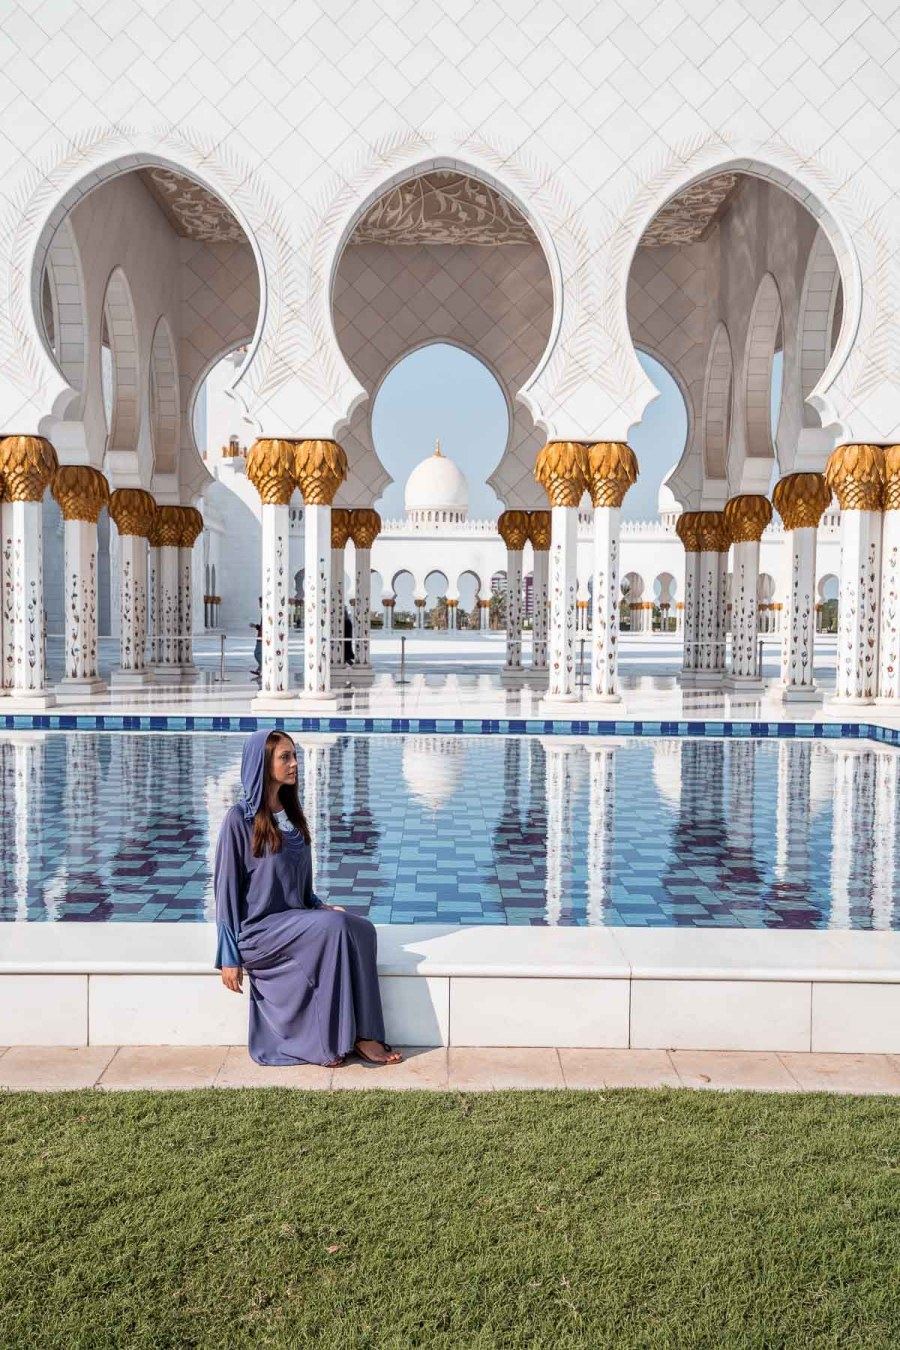 Girl in a blue abaya sitting by the pool at Sheikh Zayed Grand Mosque, Abu Dhabi